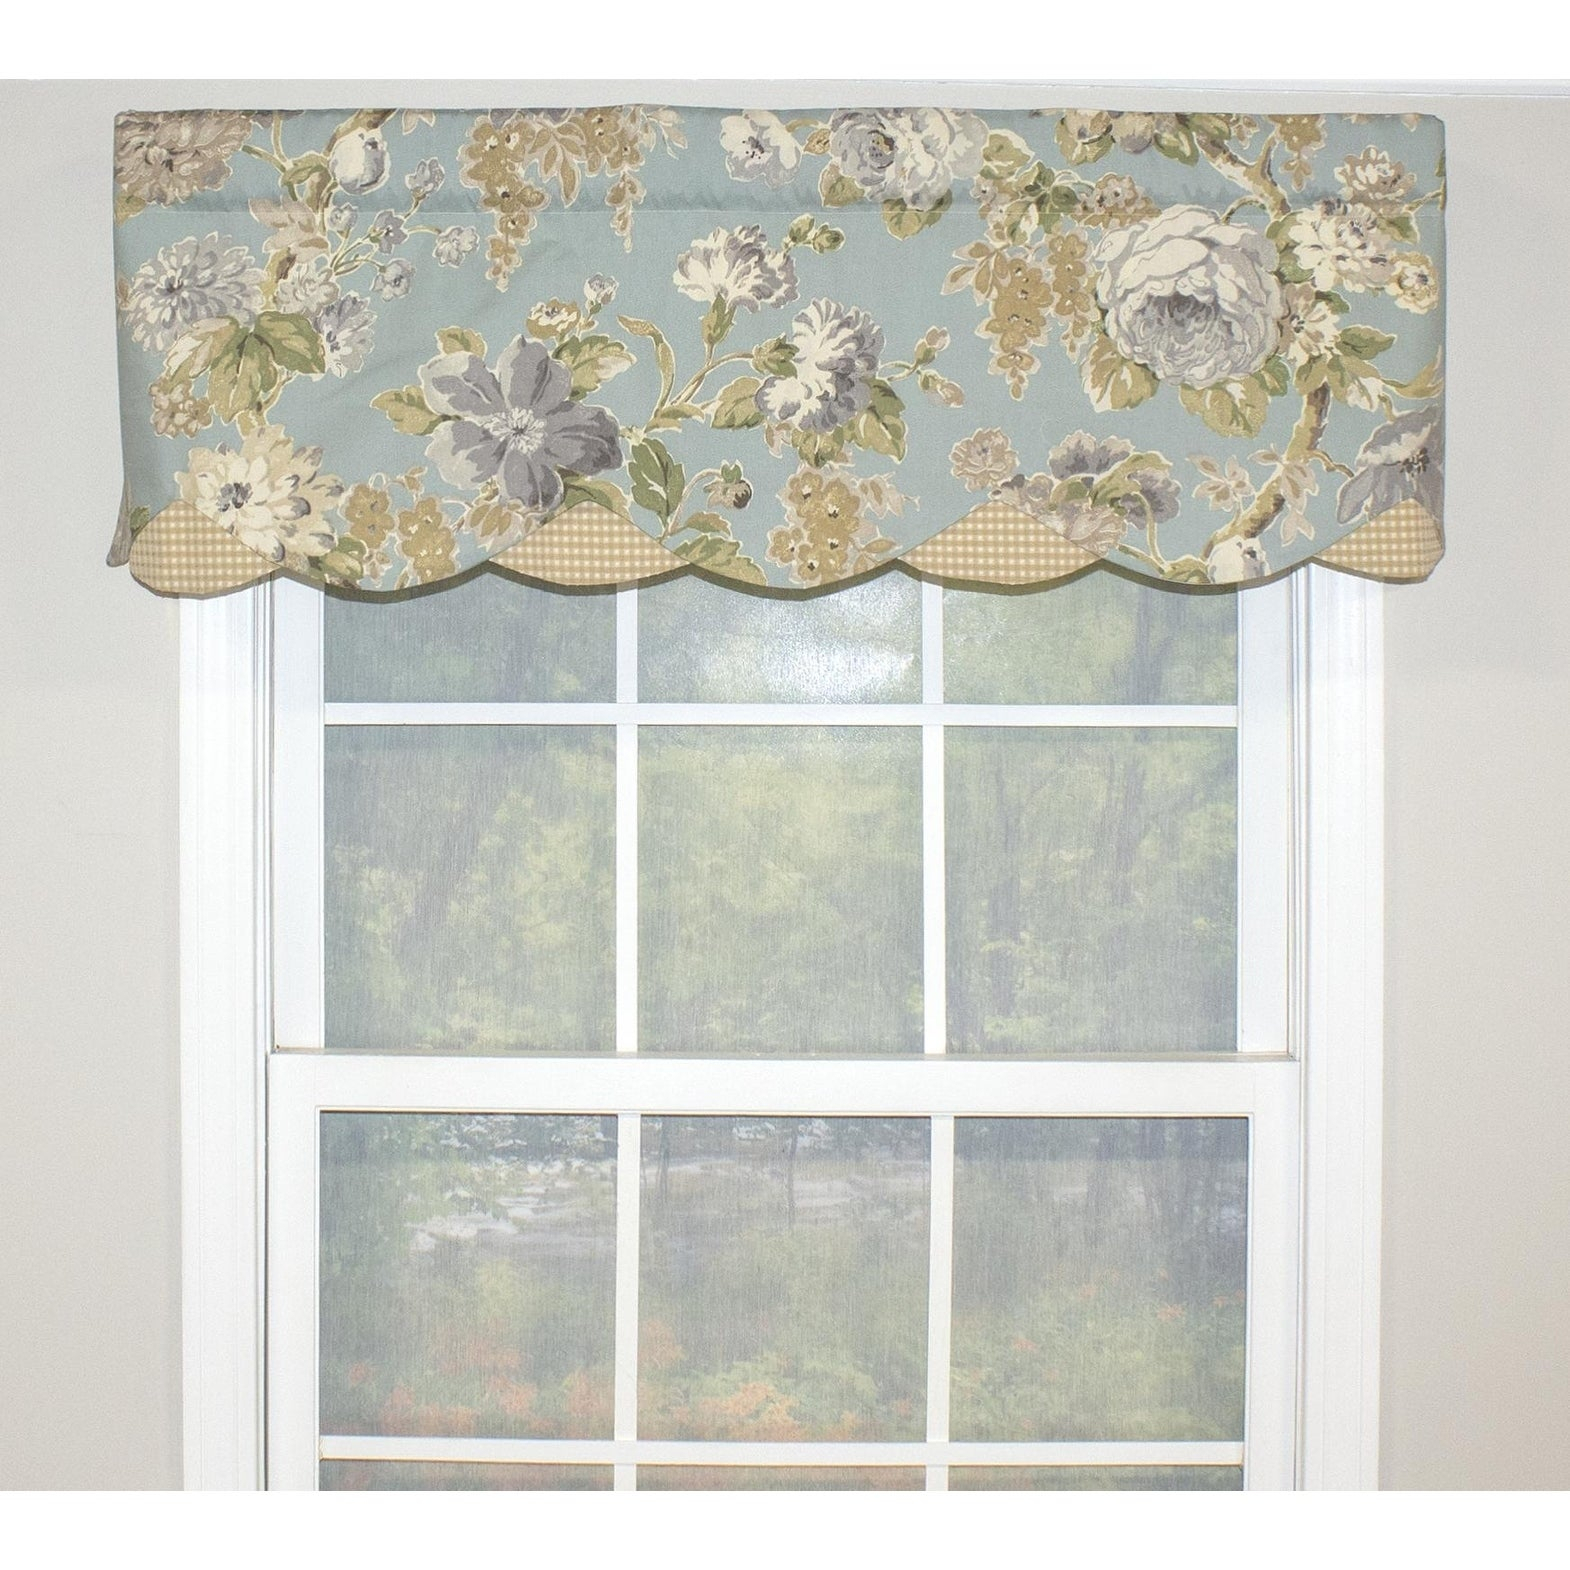 "Rlf Home Floral Bouquet Petticoat 50"" Window Valance Intended For Floral Pattern Window Valances (Gallery 12 of 20)"